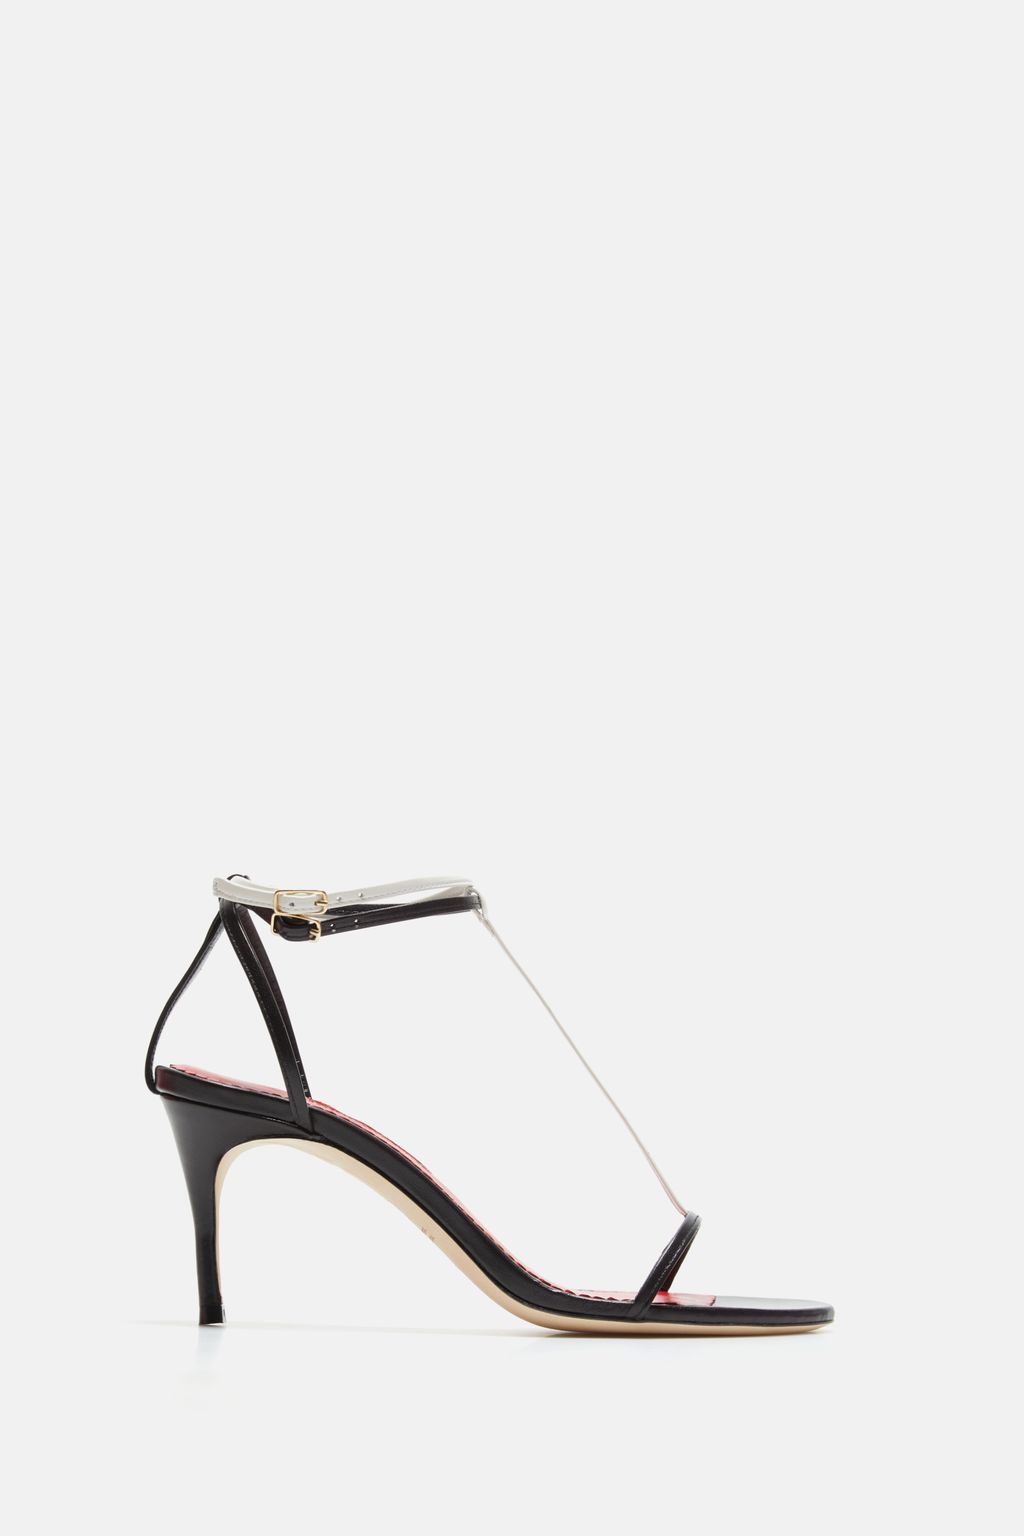 T54 Napa leather sandals